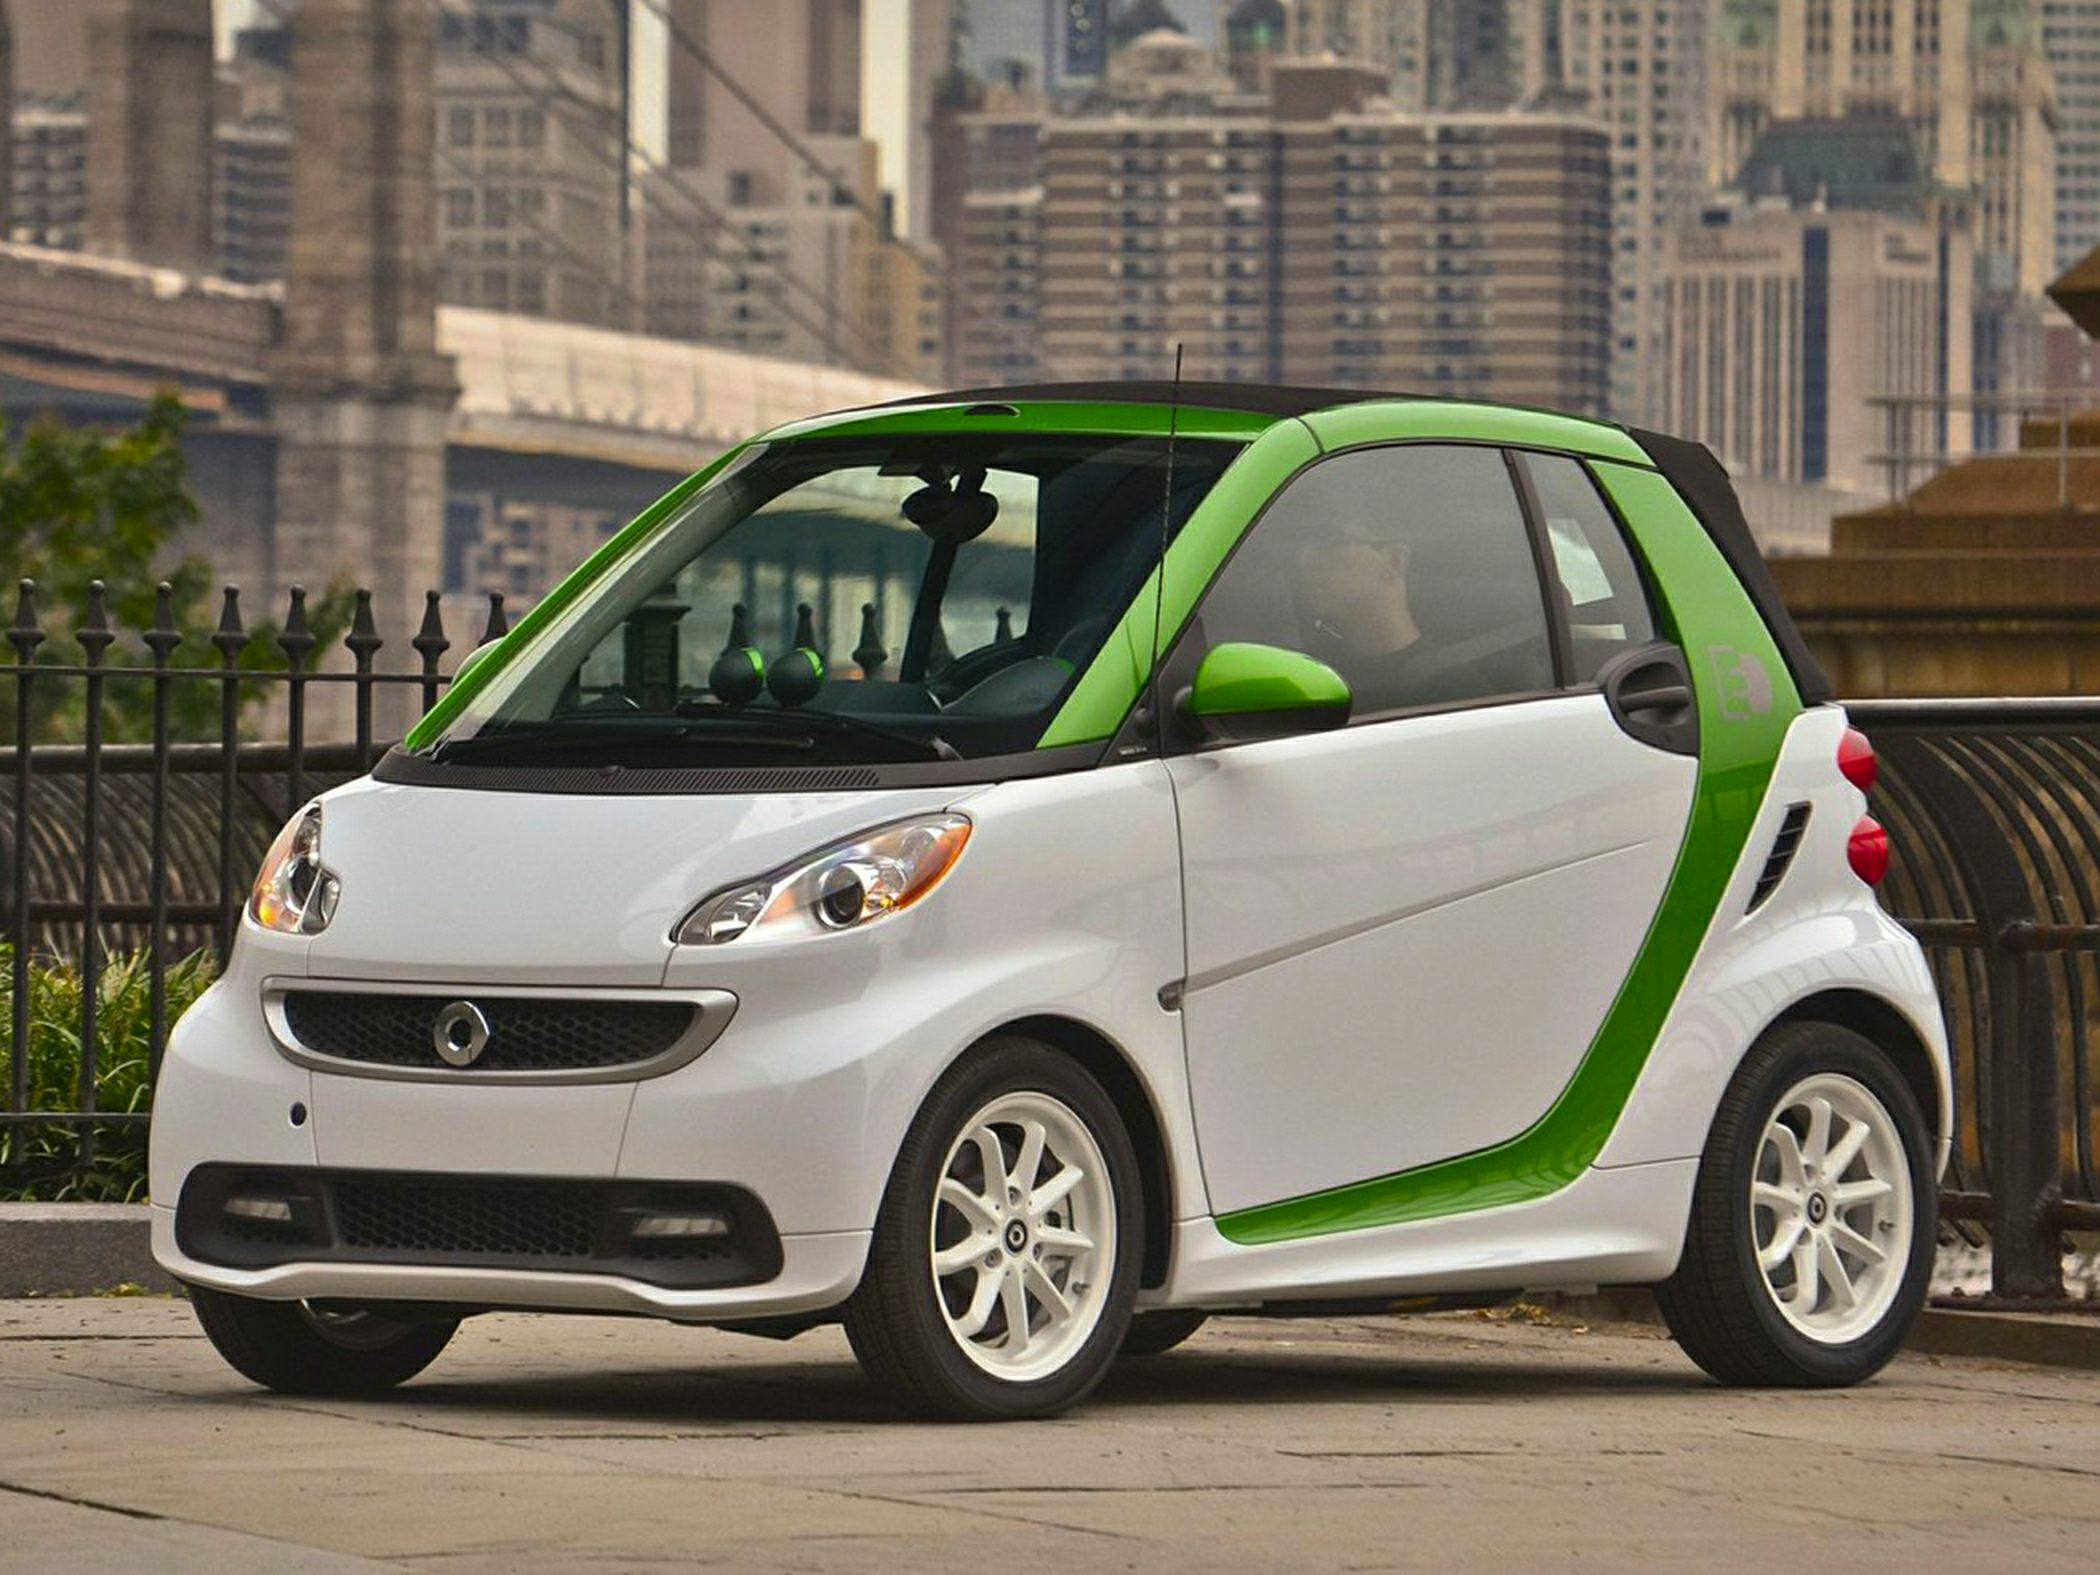 2013 Smart fortwo photo - 3